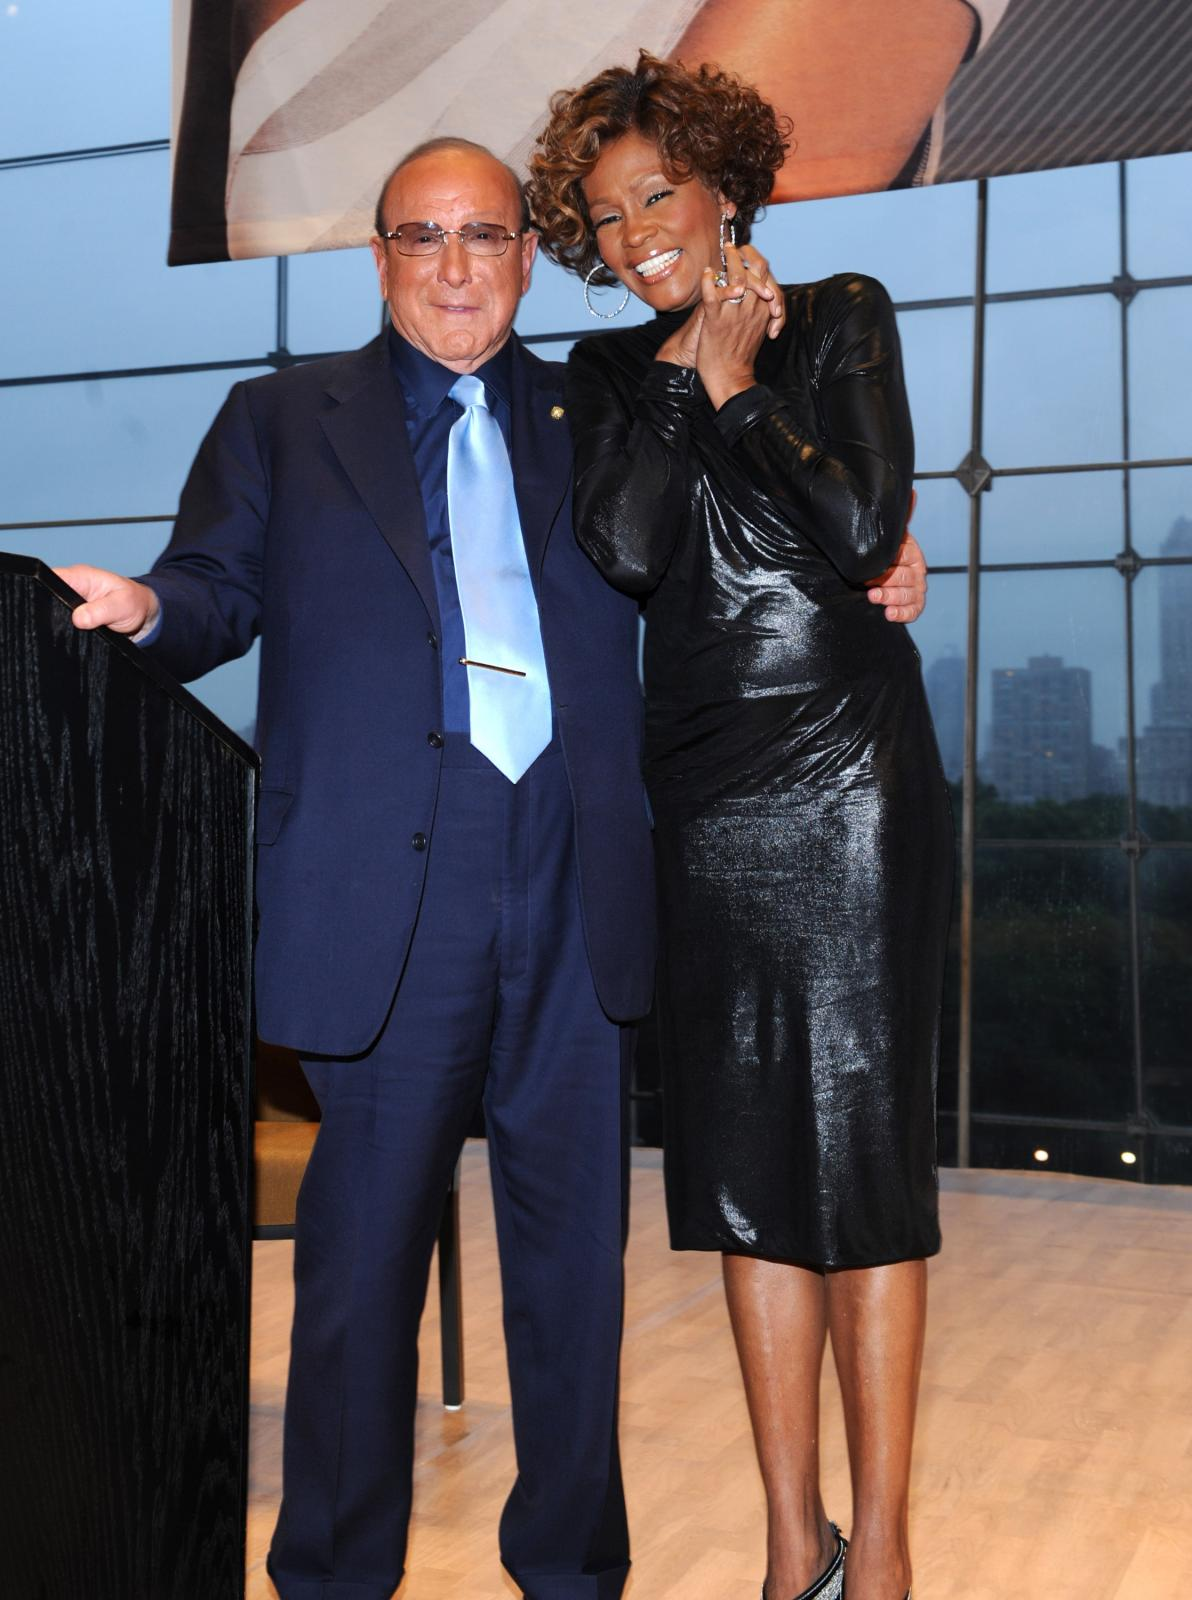 Whitney Houston and Clive Davis at second listening party for album I Look To You at Allen Room at Lincoln Center in New York, NY July 21, 2009